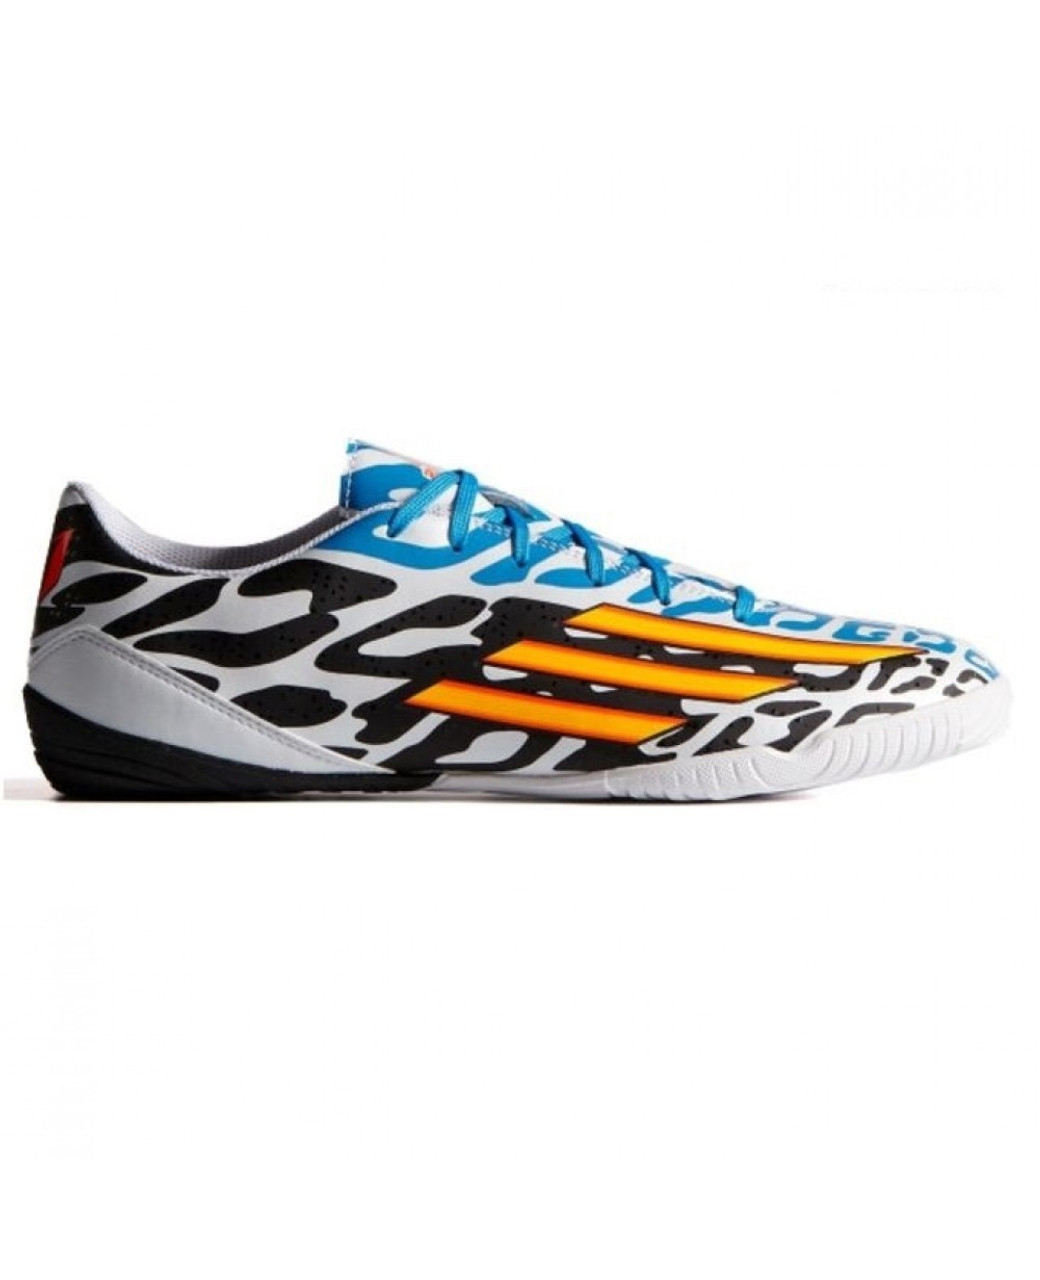 ADIDAS MESSI F10 World Cup Indoor Shoes